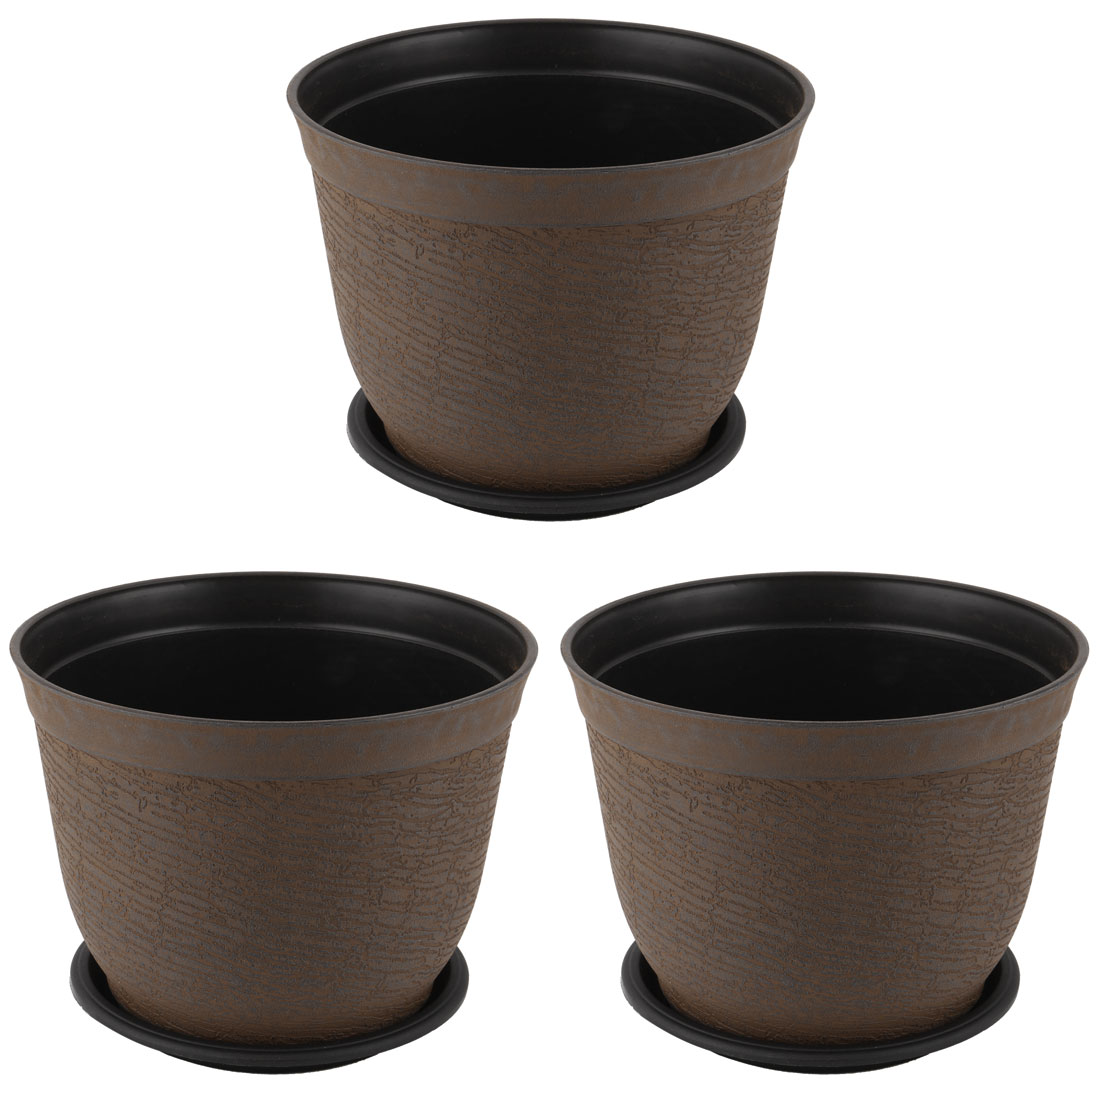 Balcony Plastic Round Flower Plant Cactus Pot Tray Holder Container Brown 3pcs